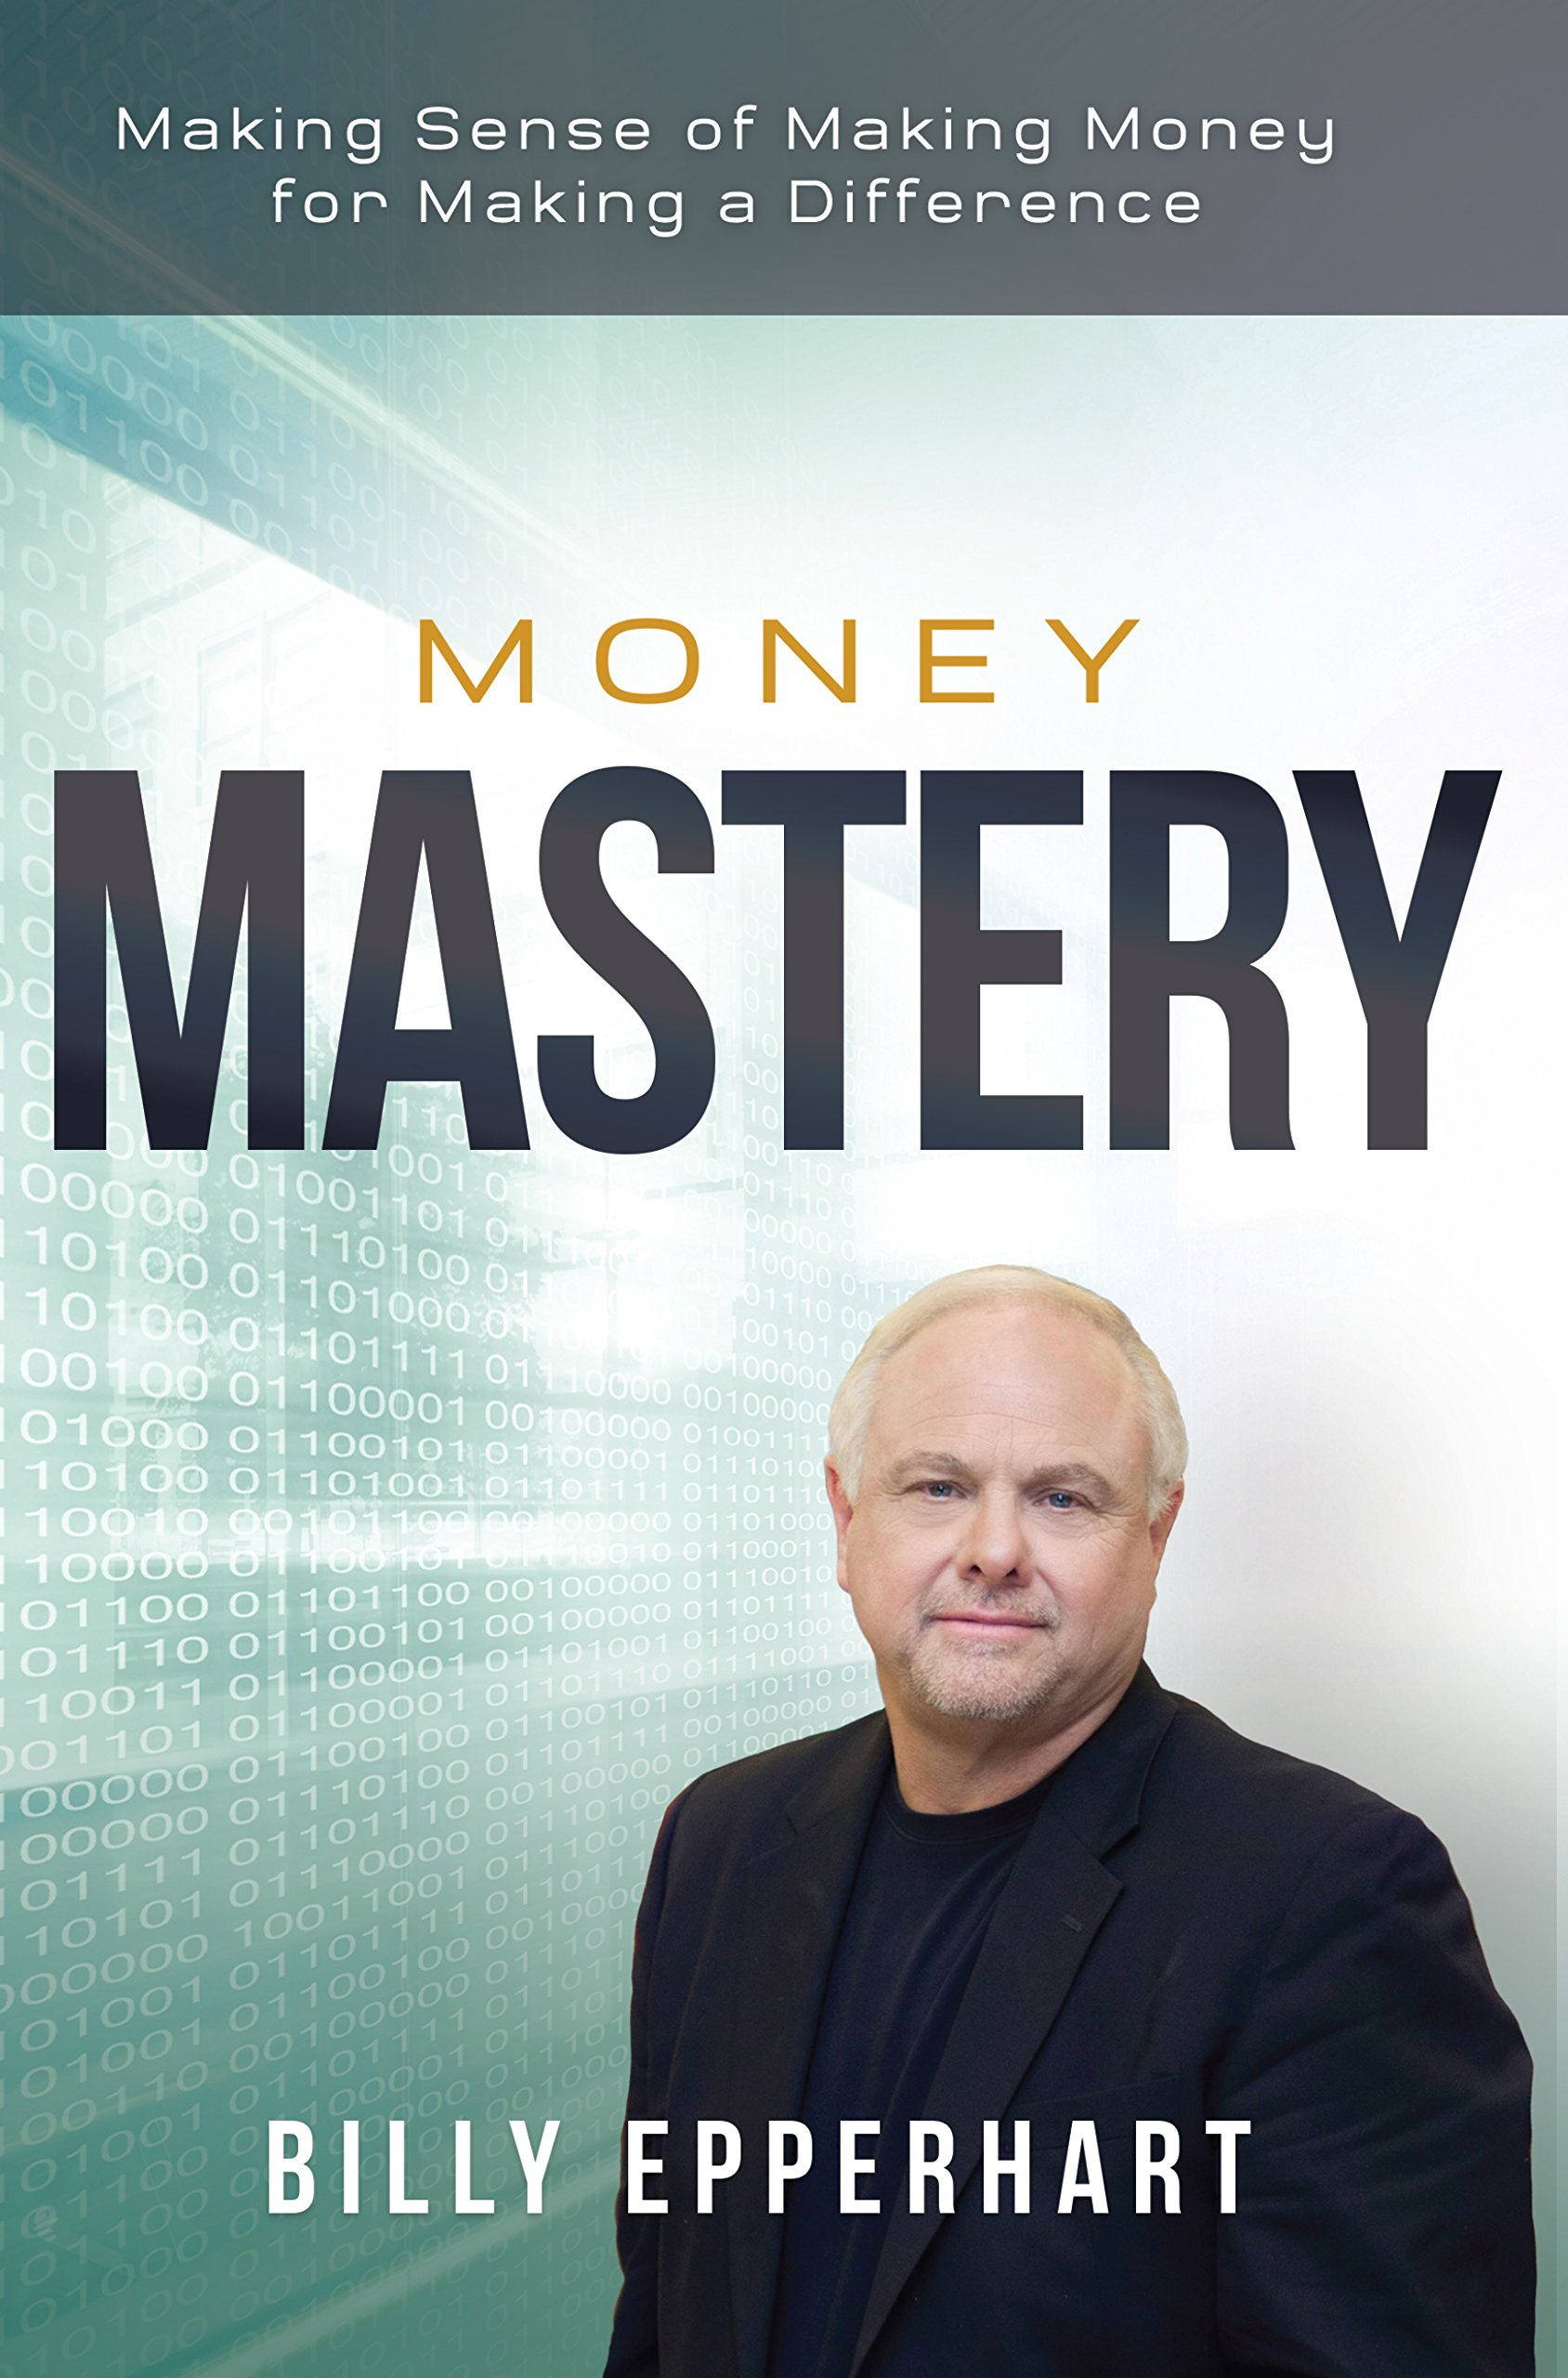 Money Mastery: Making Sense of Making Money for Making a Difference PDF